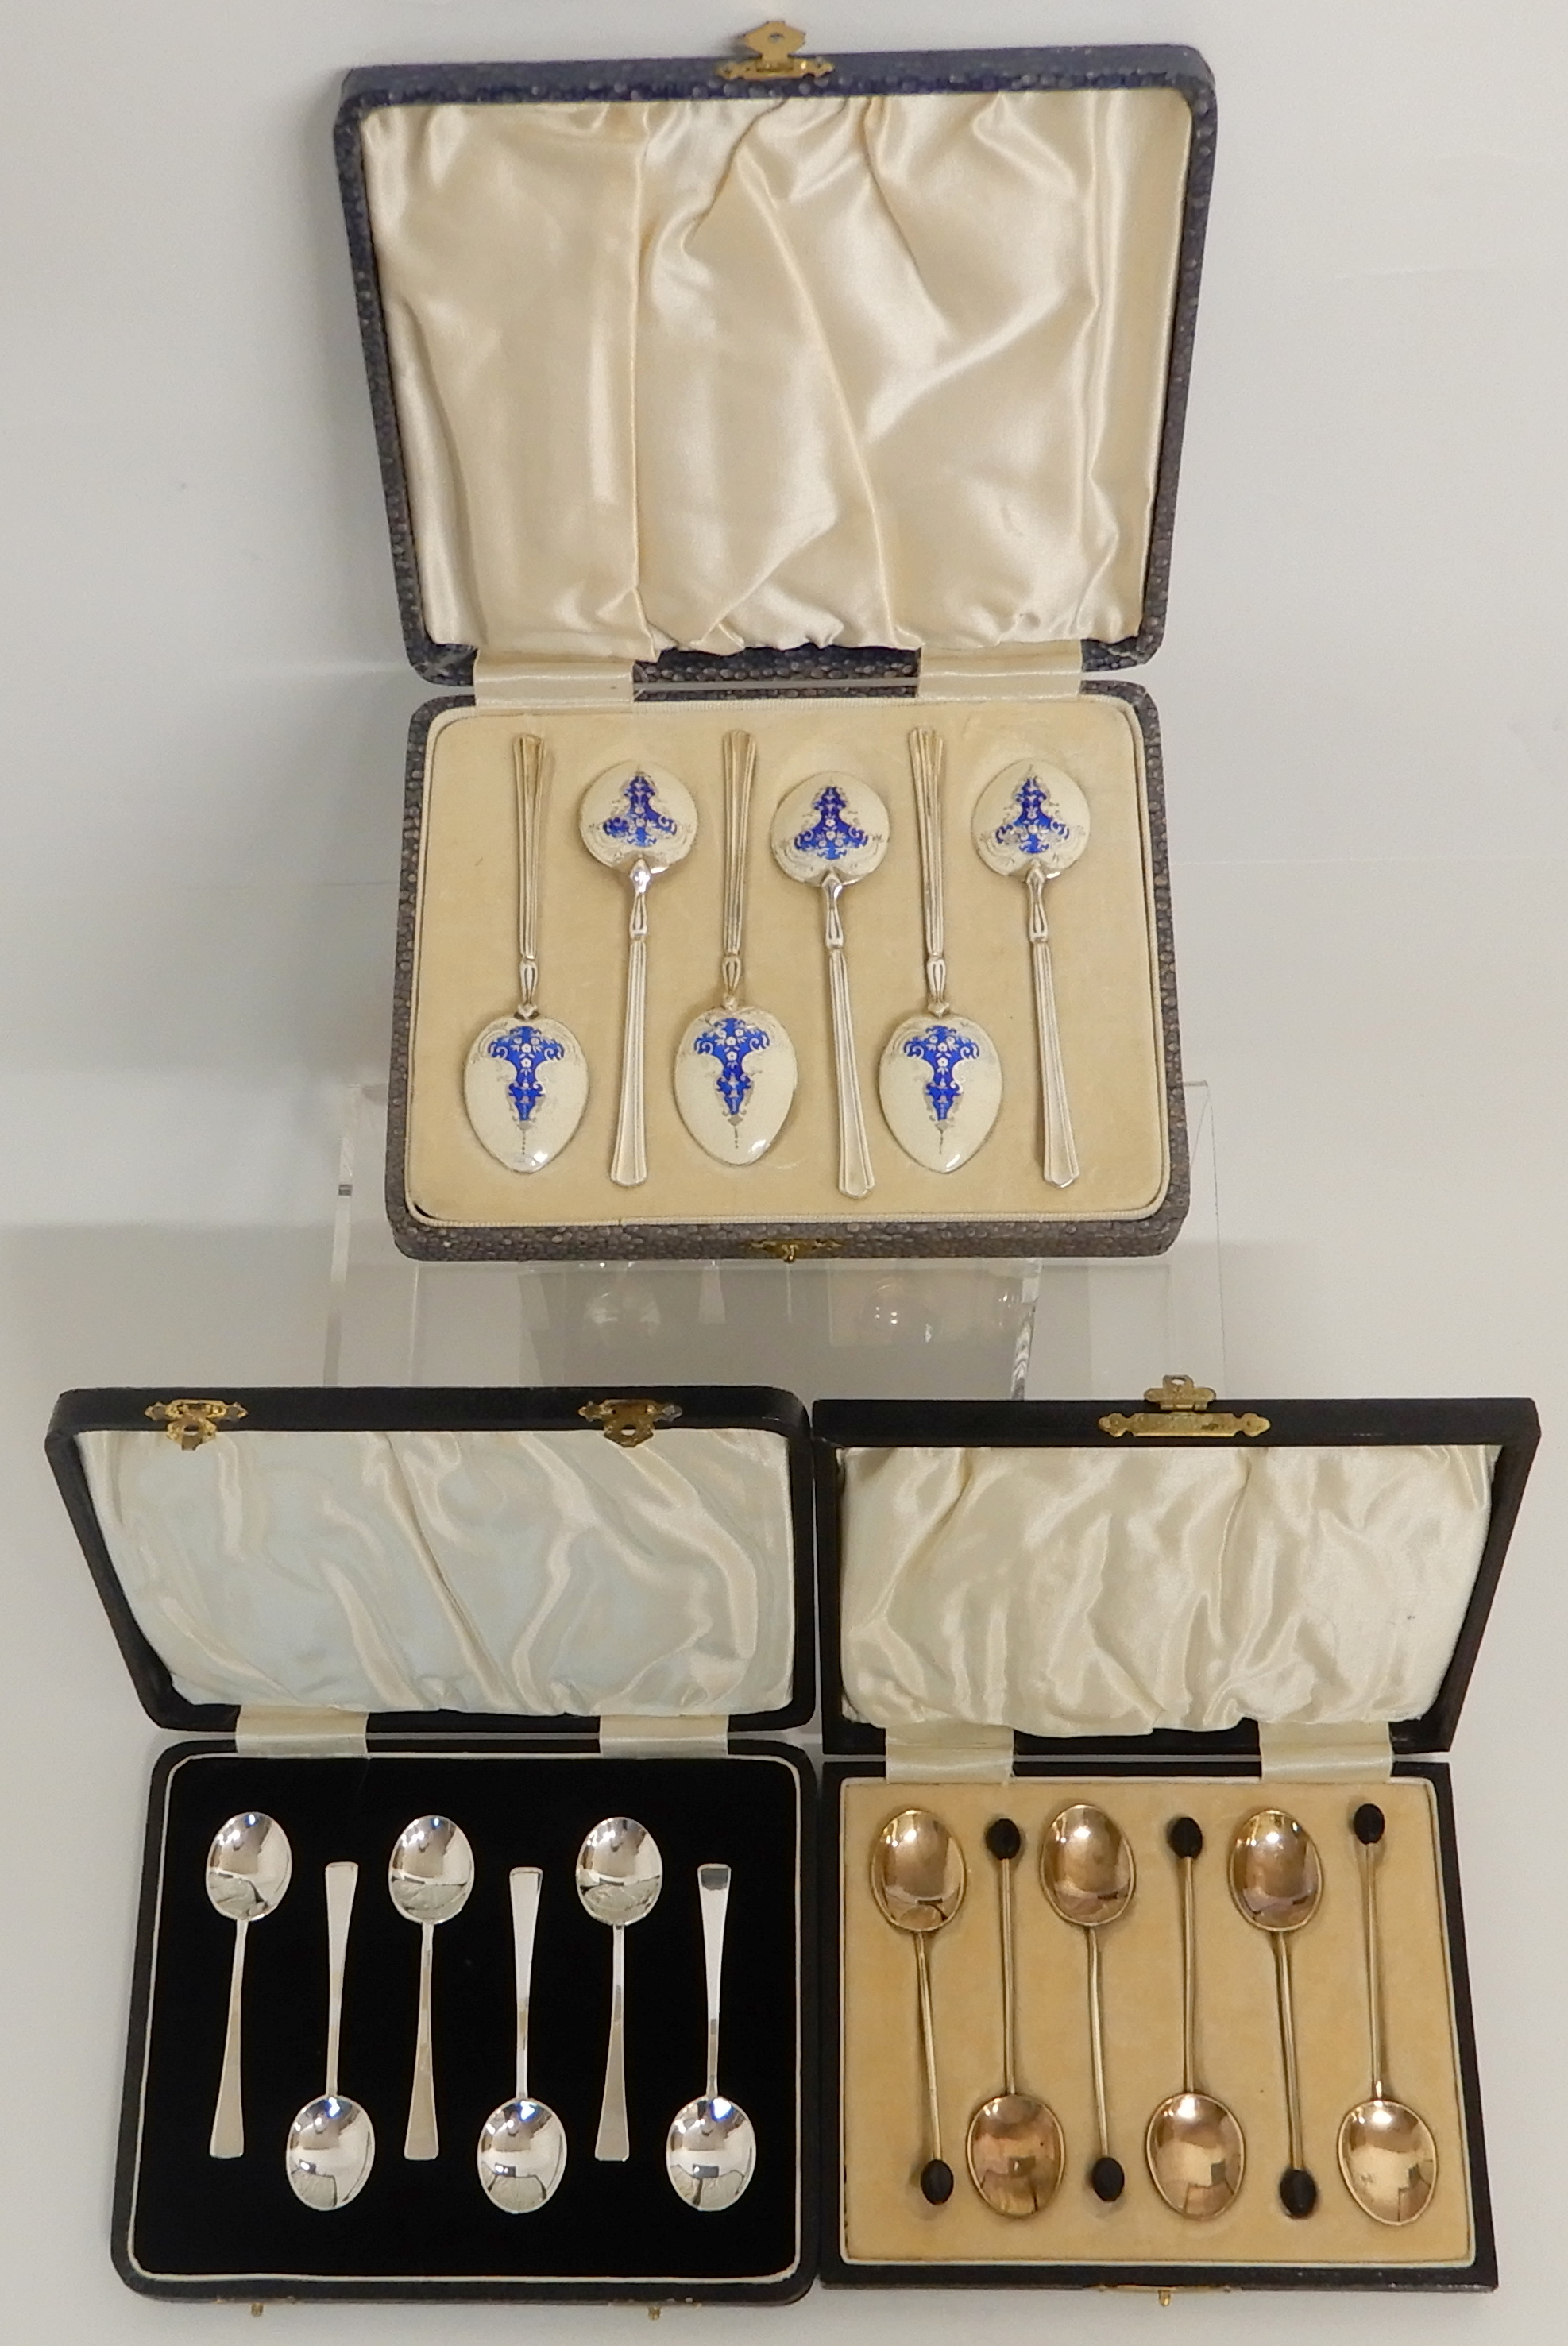 Lot 145 - A CASED SET OF SIX SILVER AND ENAMEL COFFEE SPOONS by Turner & Simpson Limited, Birmingham 1935, the